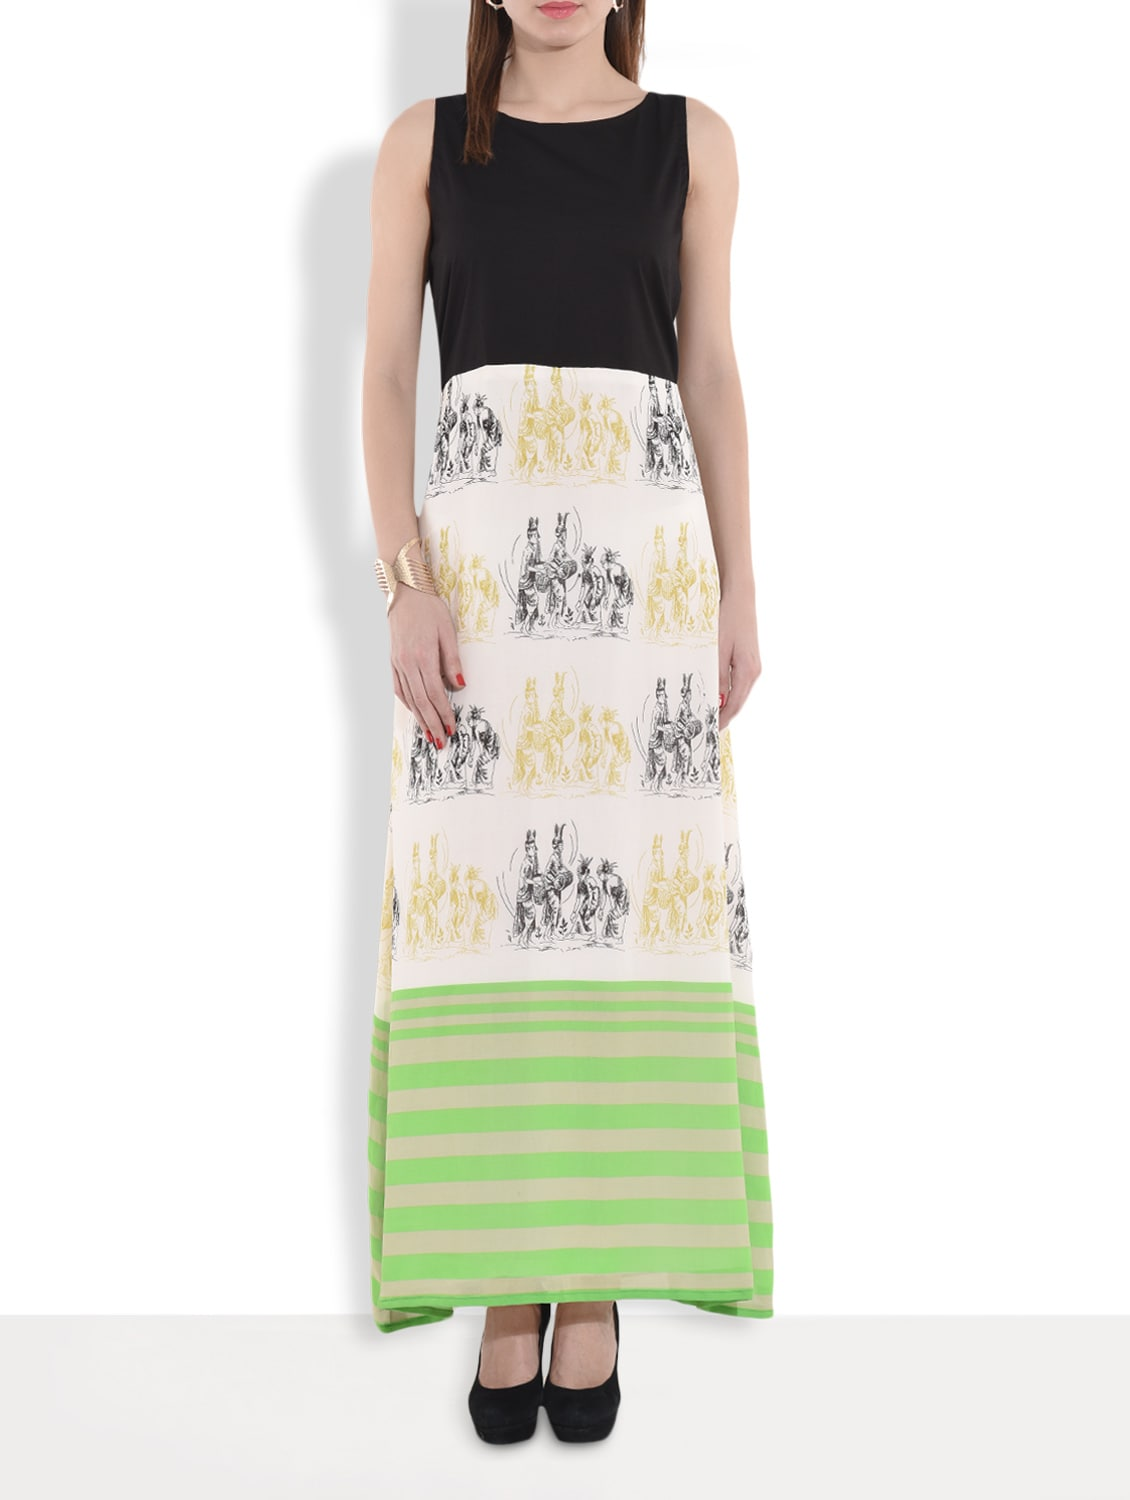 Multicolored Printed Sleeveless Maxi Dress - By